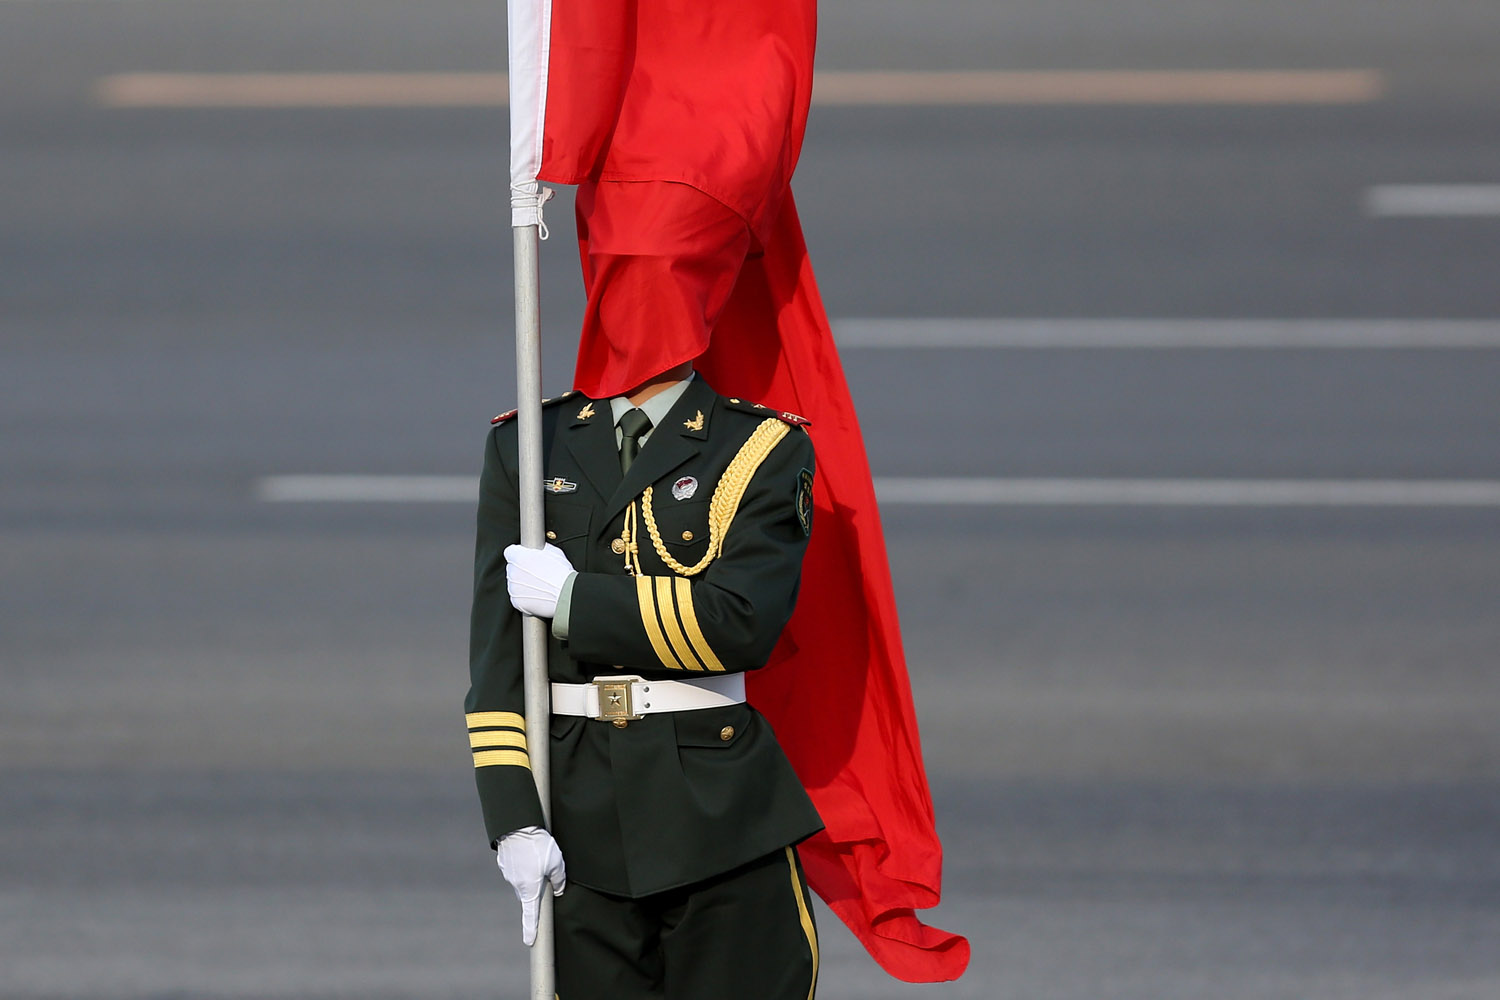 April 9, 2013. The wind blows a red flag onto the face of an honour guard before a welcome ceremony for Australia's Prime Minister Julia Gillard outside the Great Hall of the People in Beijing, China.